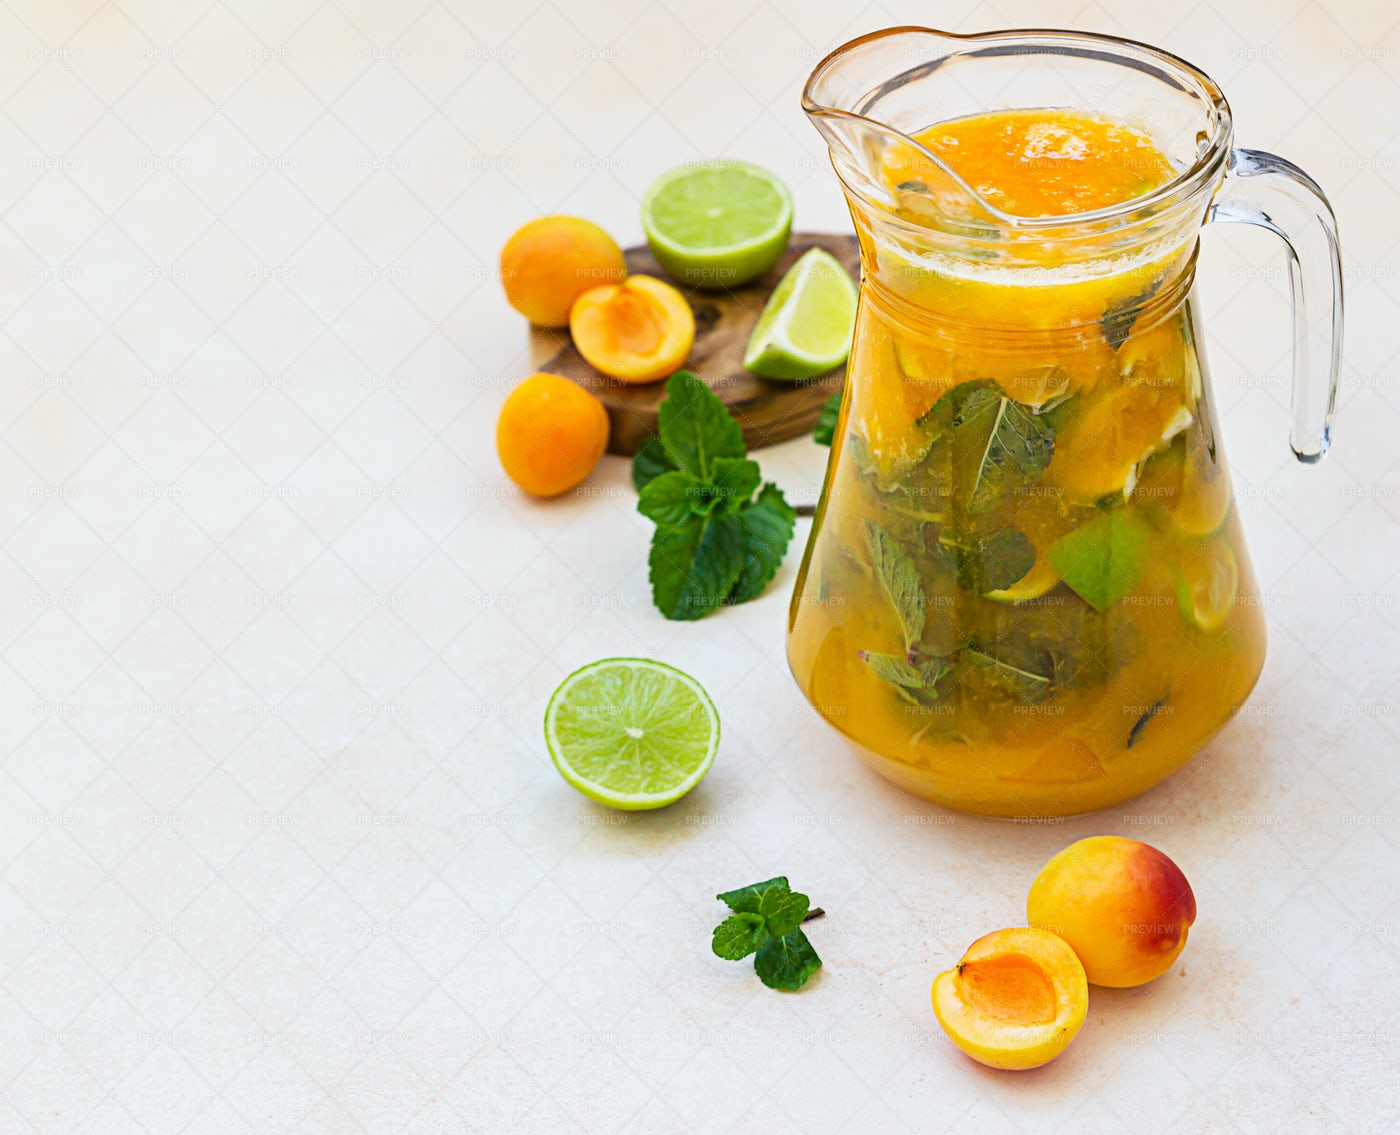 Apricot Limeade Background: Stock Photos